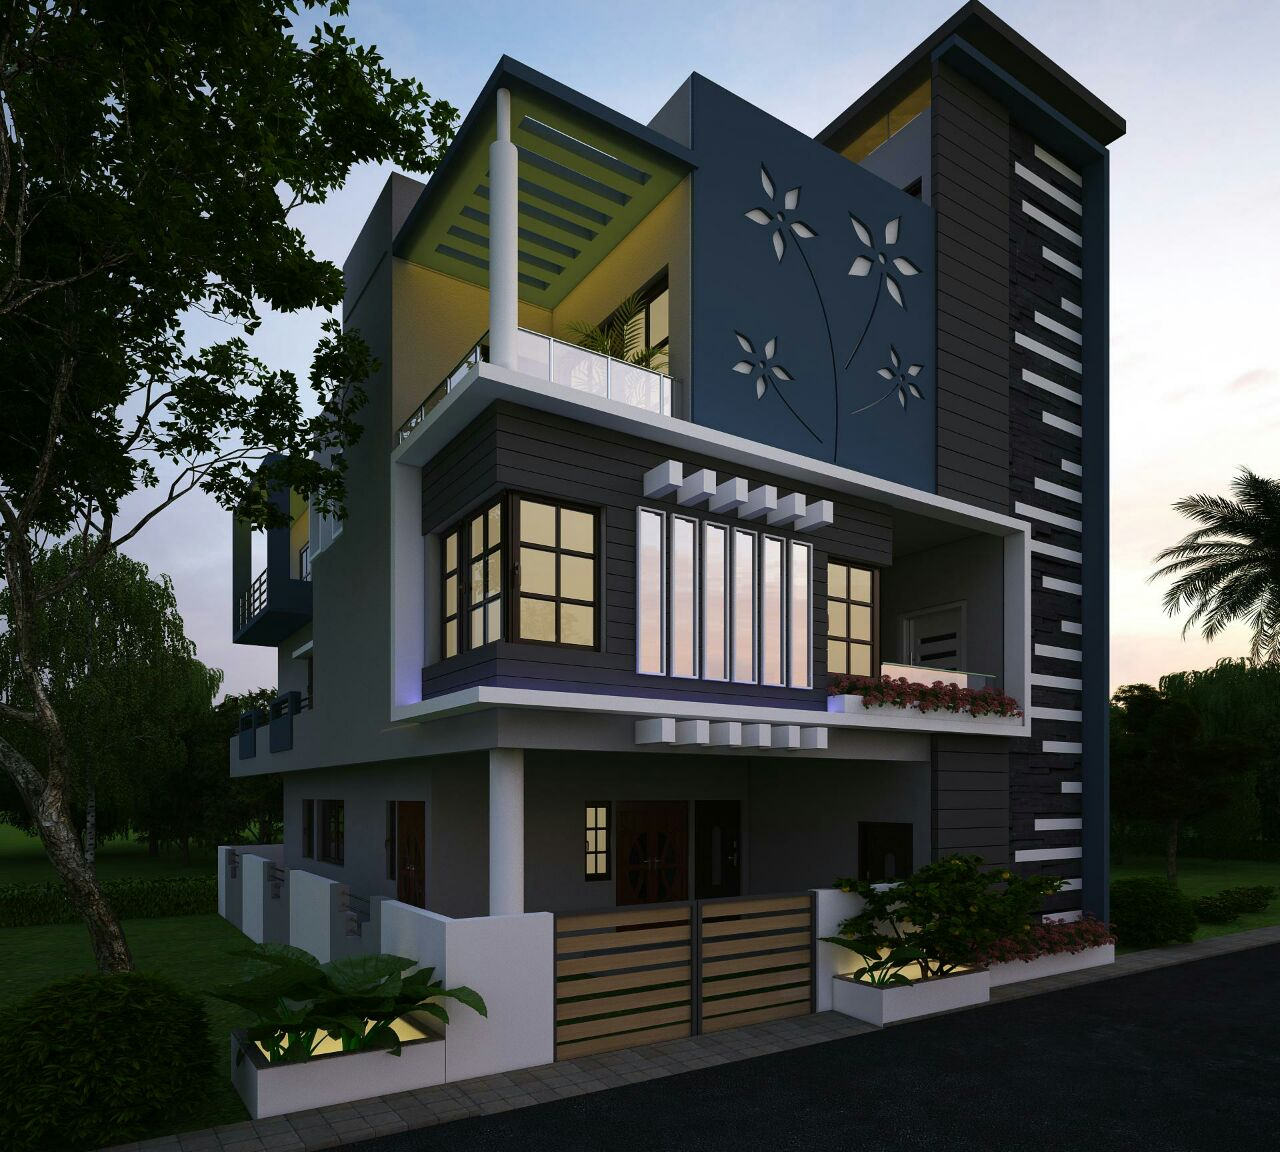 Latest house elevation designs 2016 for Home design ideas 2016